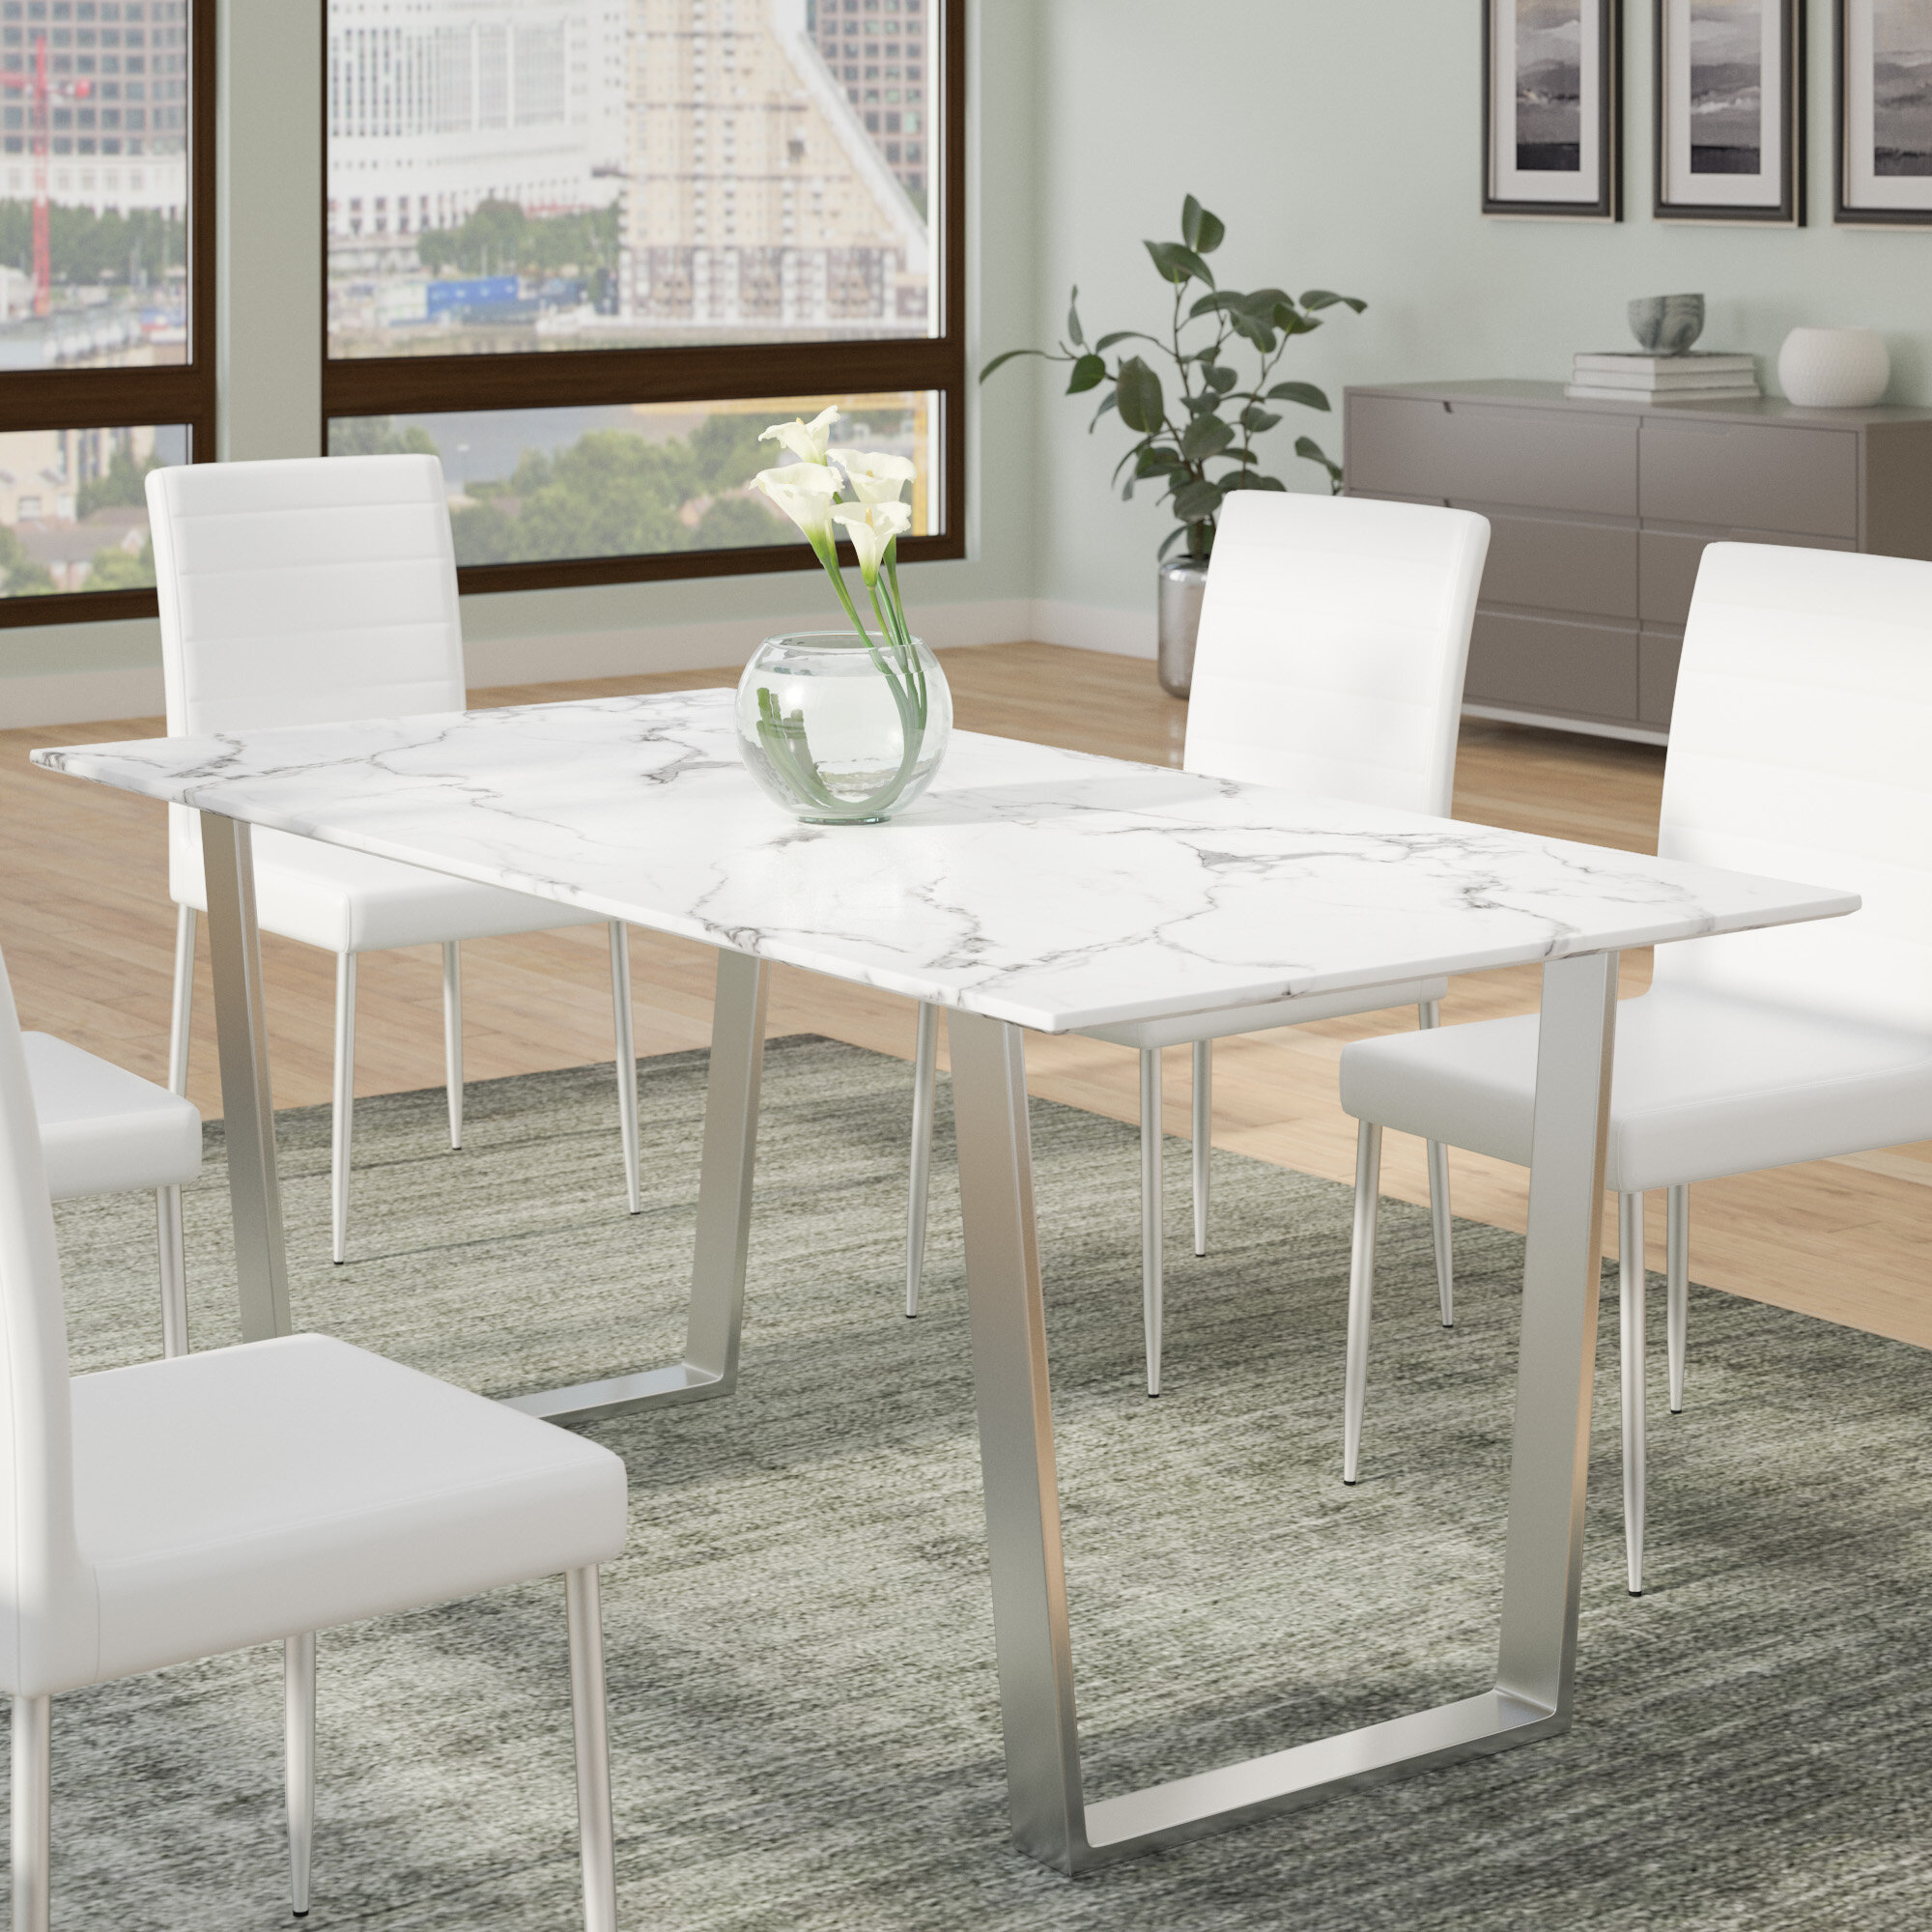 Wade logan geelong dining table wayfair ca